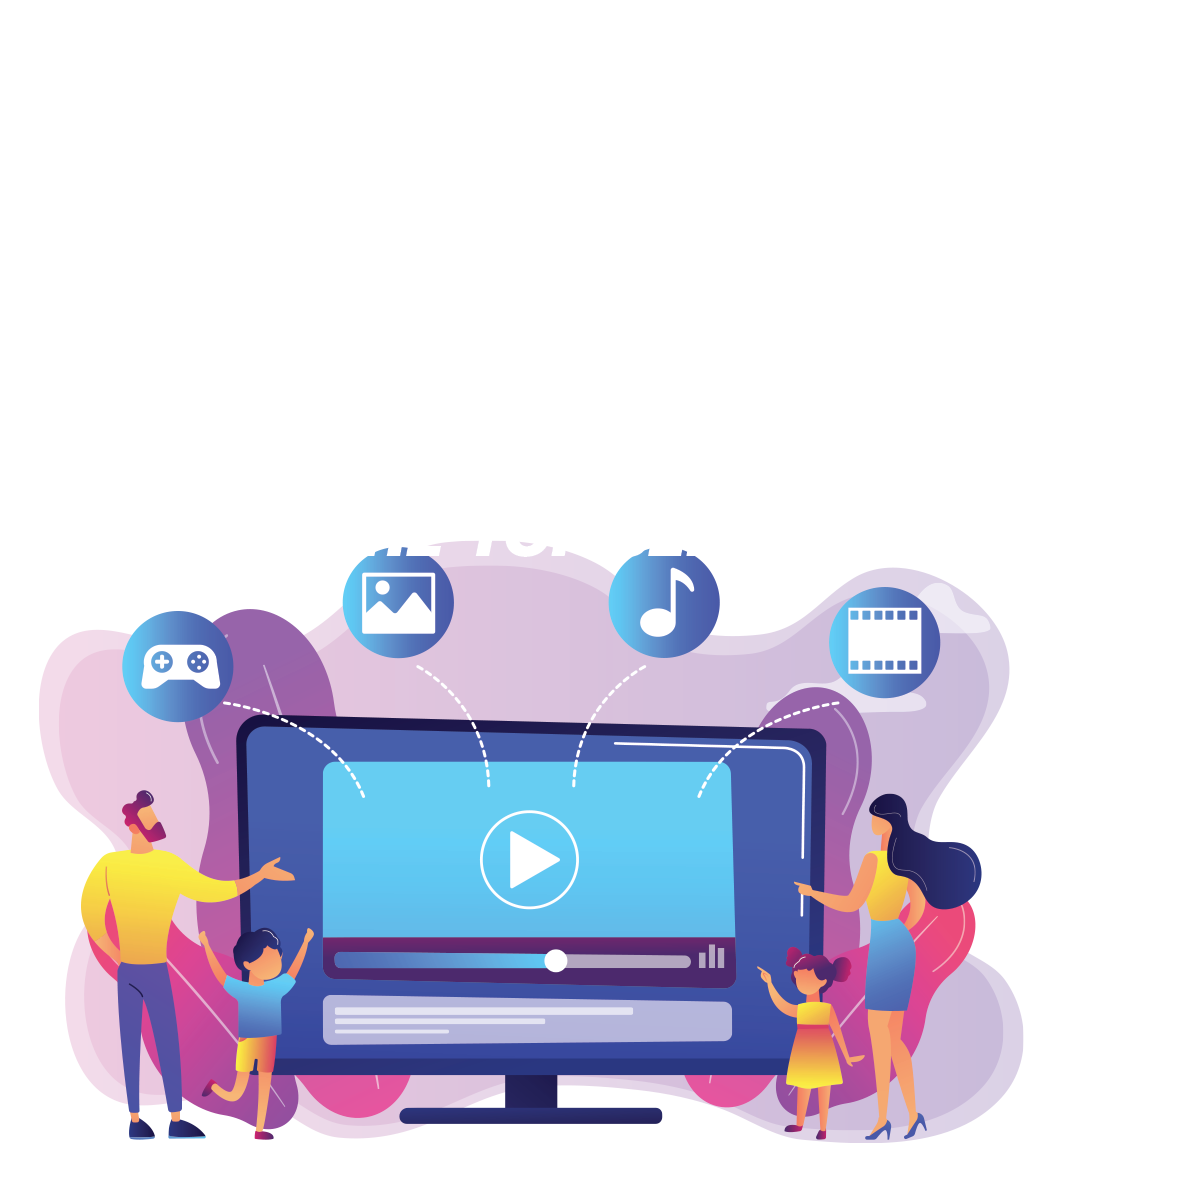 200 million estimated subscribers to over the top services by 2023